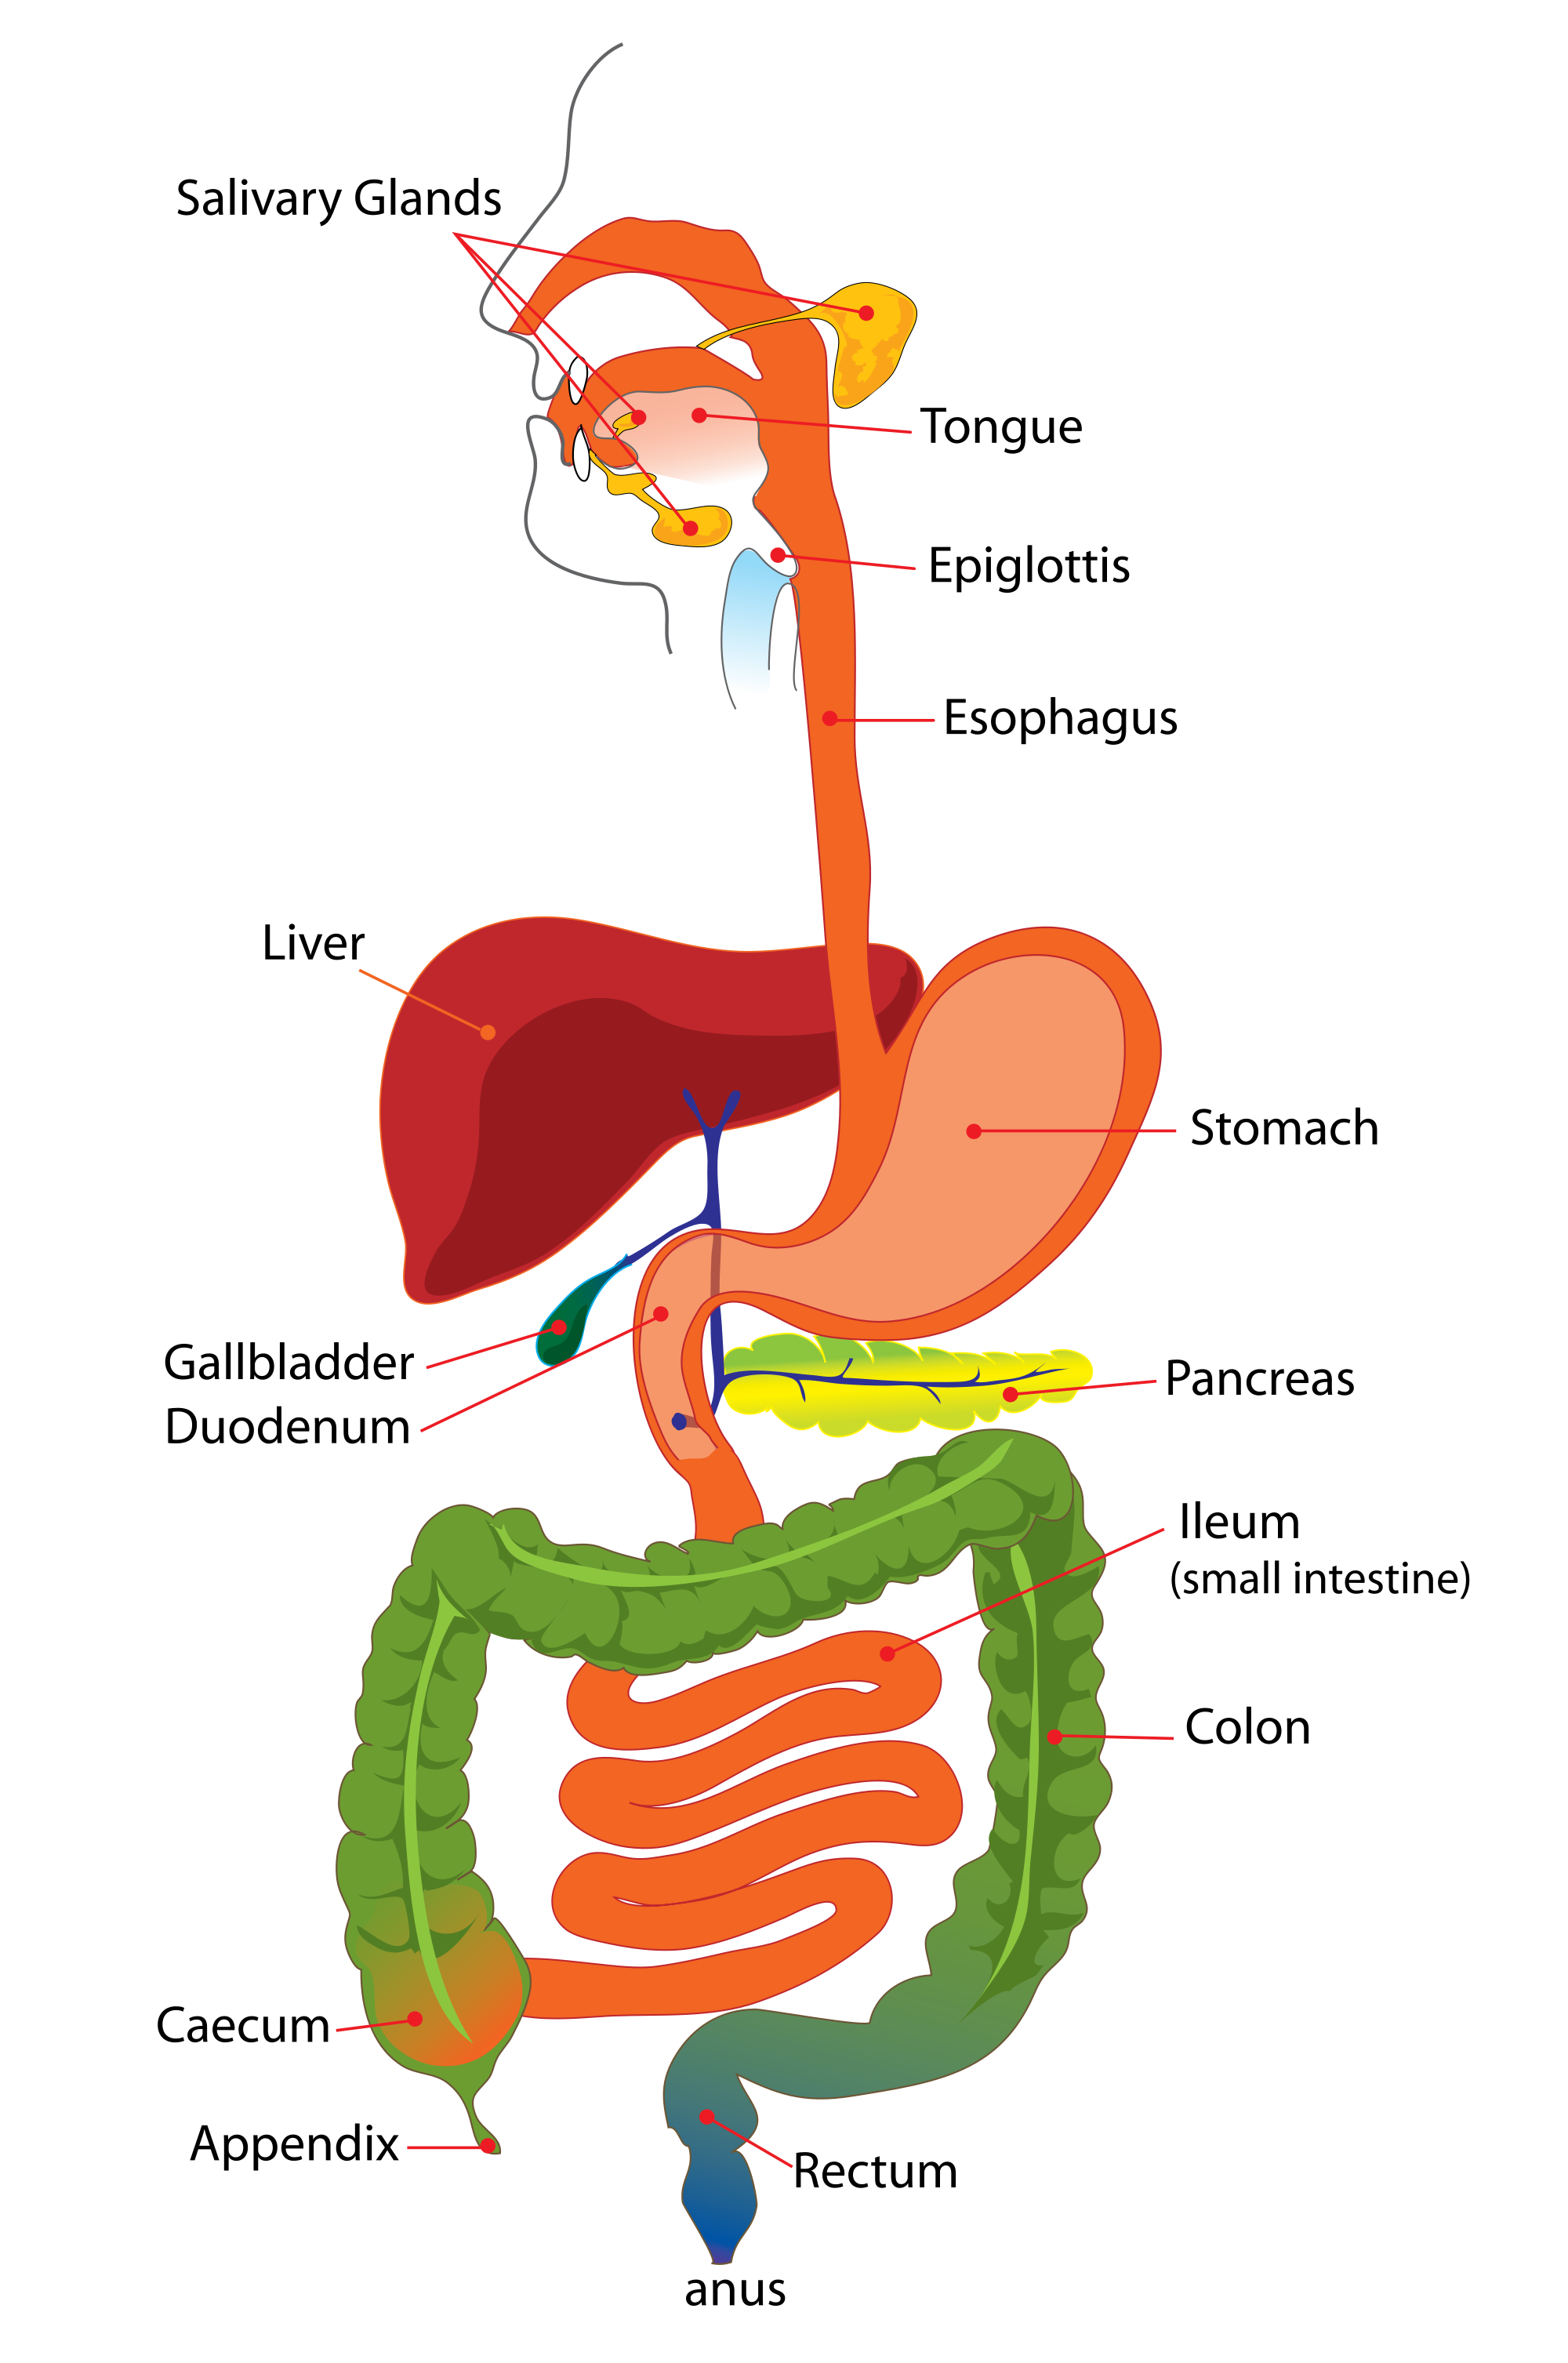 Diagram of the digestive system to show areas affected by IBD